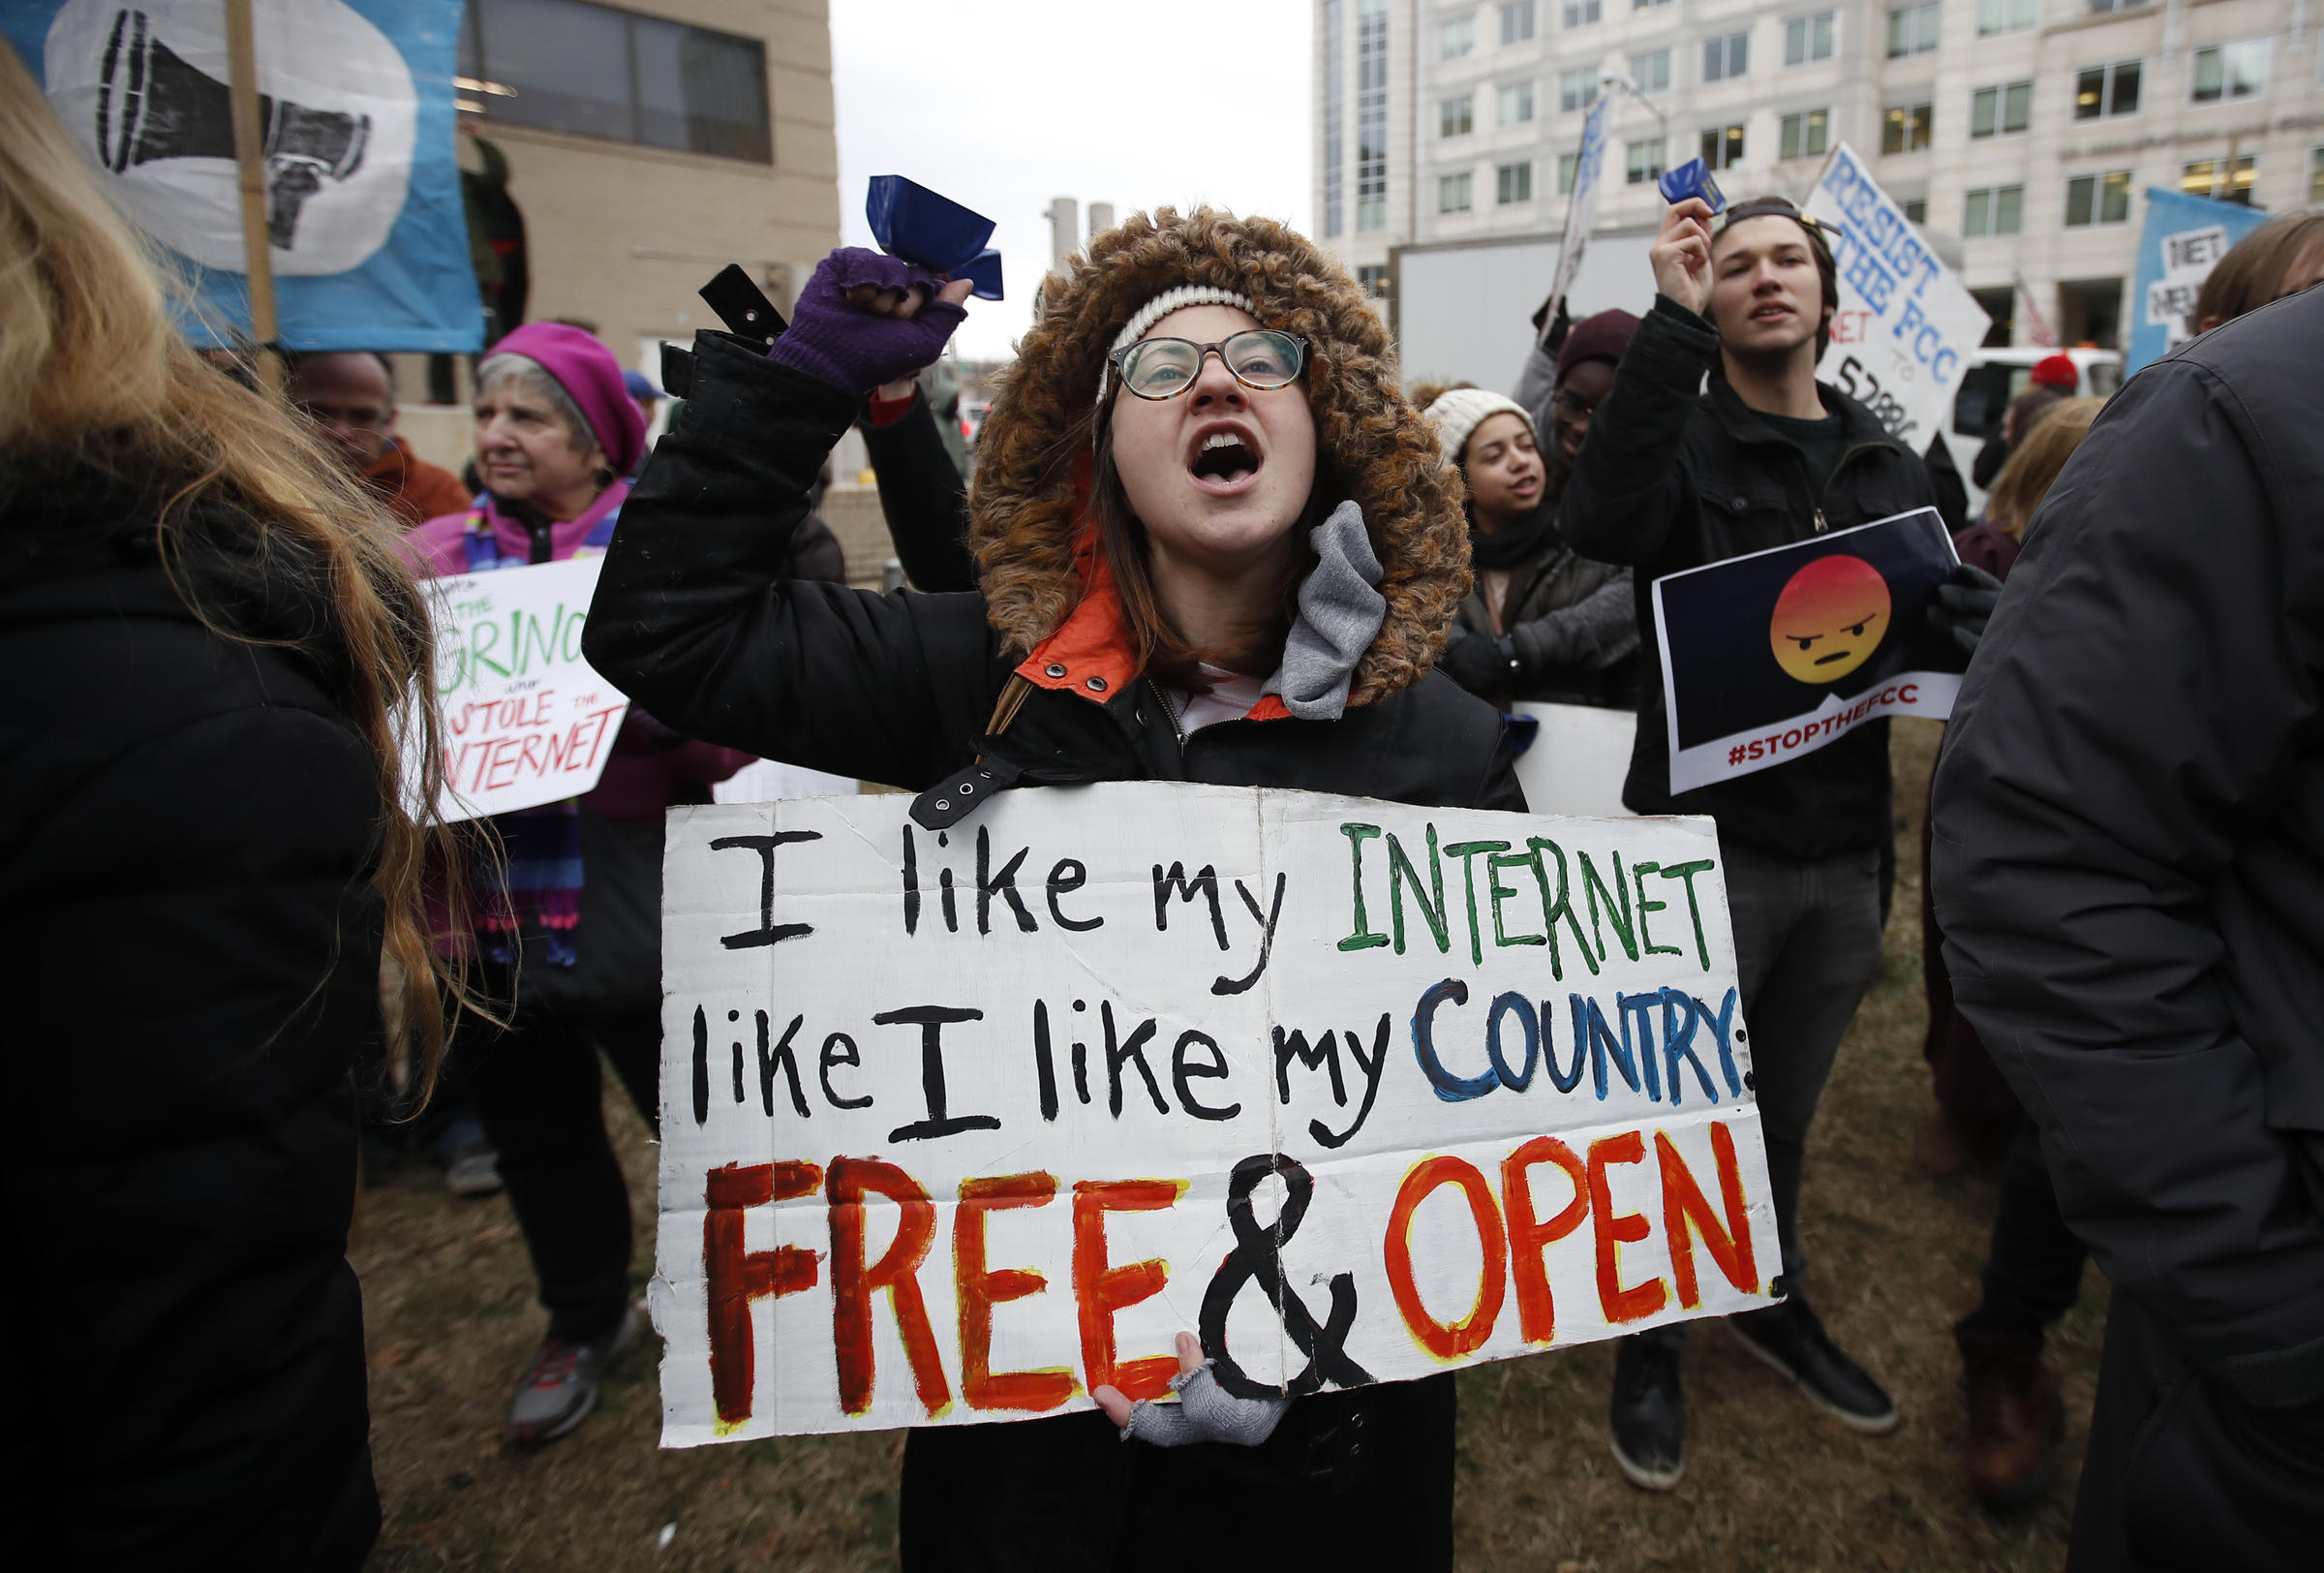 The US Senate just voted to save net neutrality